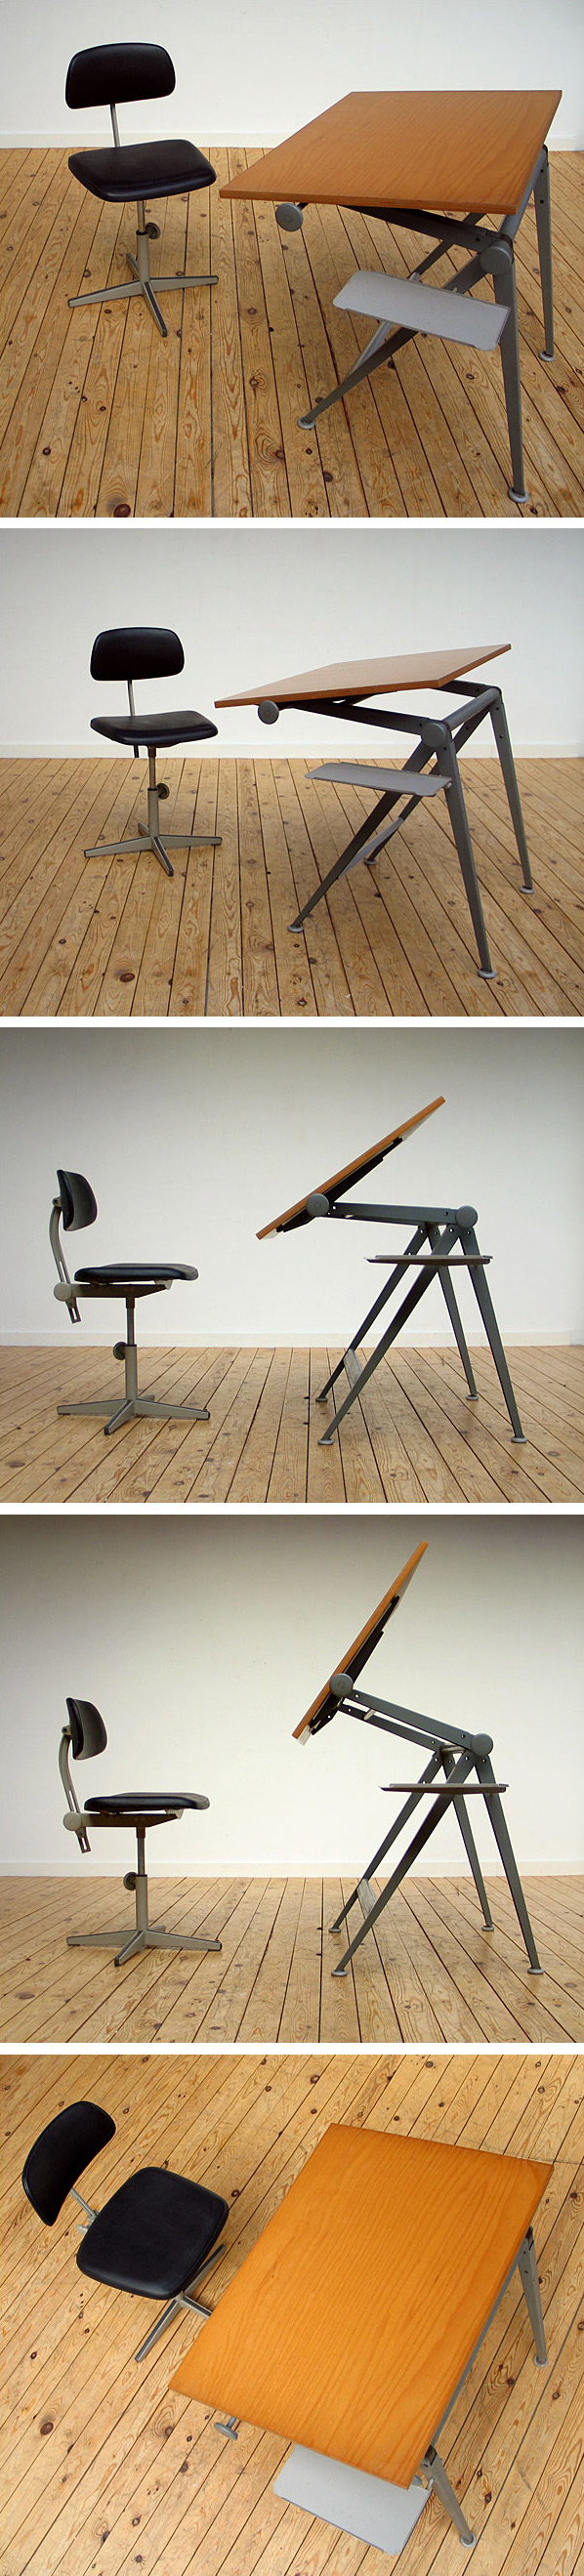 Friso Kramer Industrial drafting table and chair 1954 Large